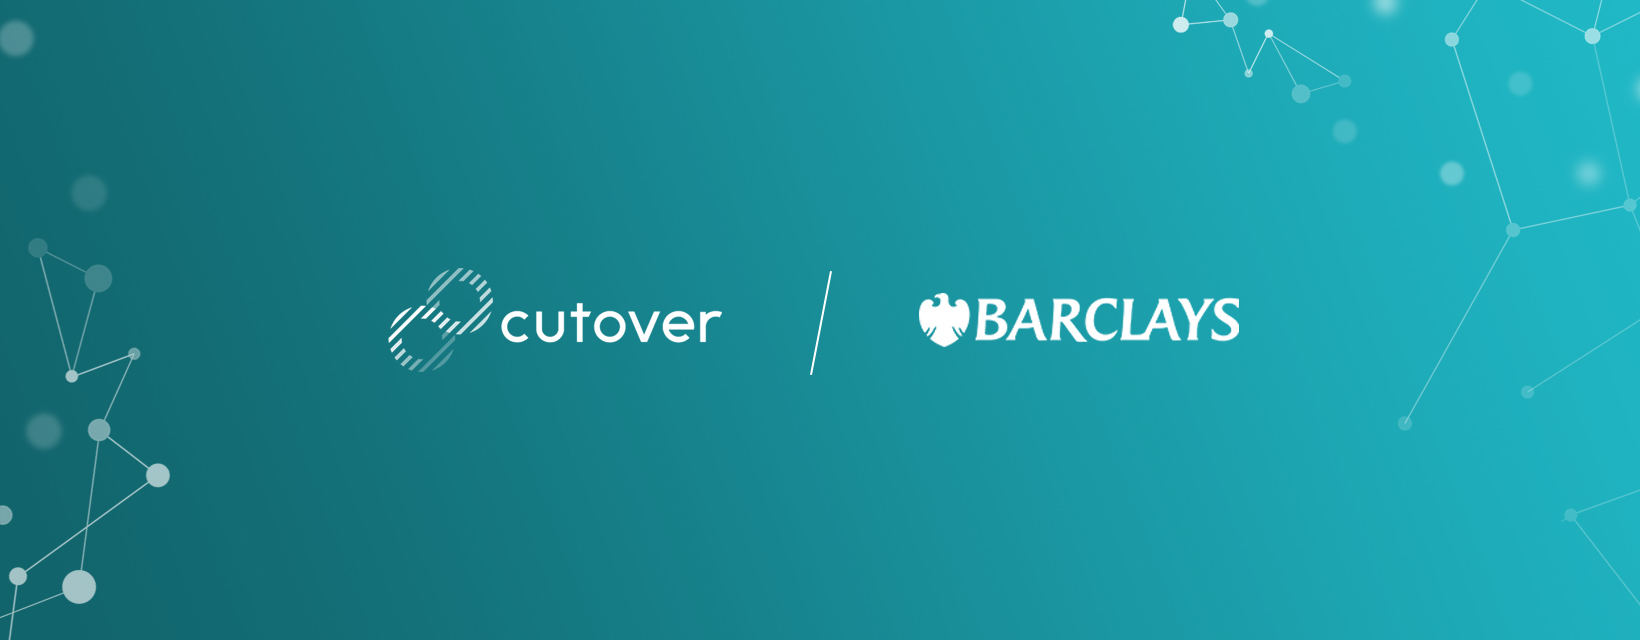 Cutover secures investment from Barclays in $17m Series A funding round